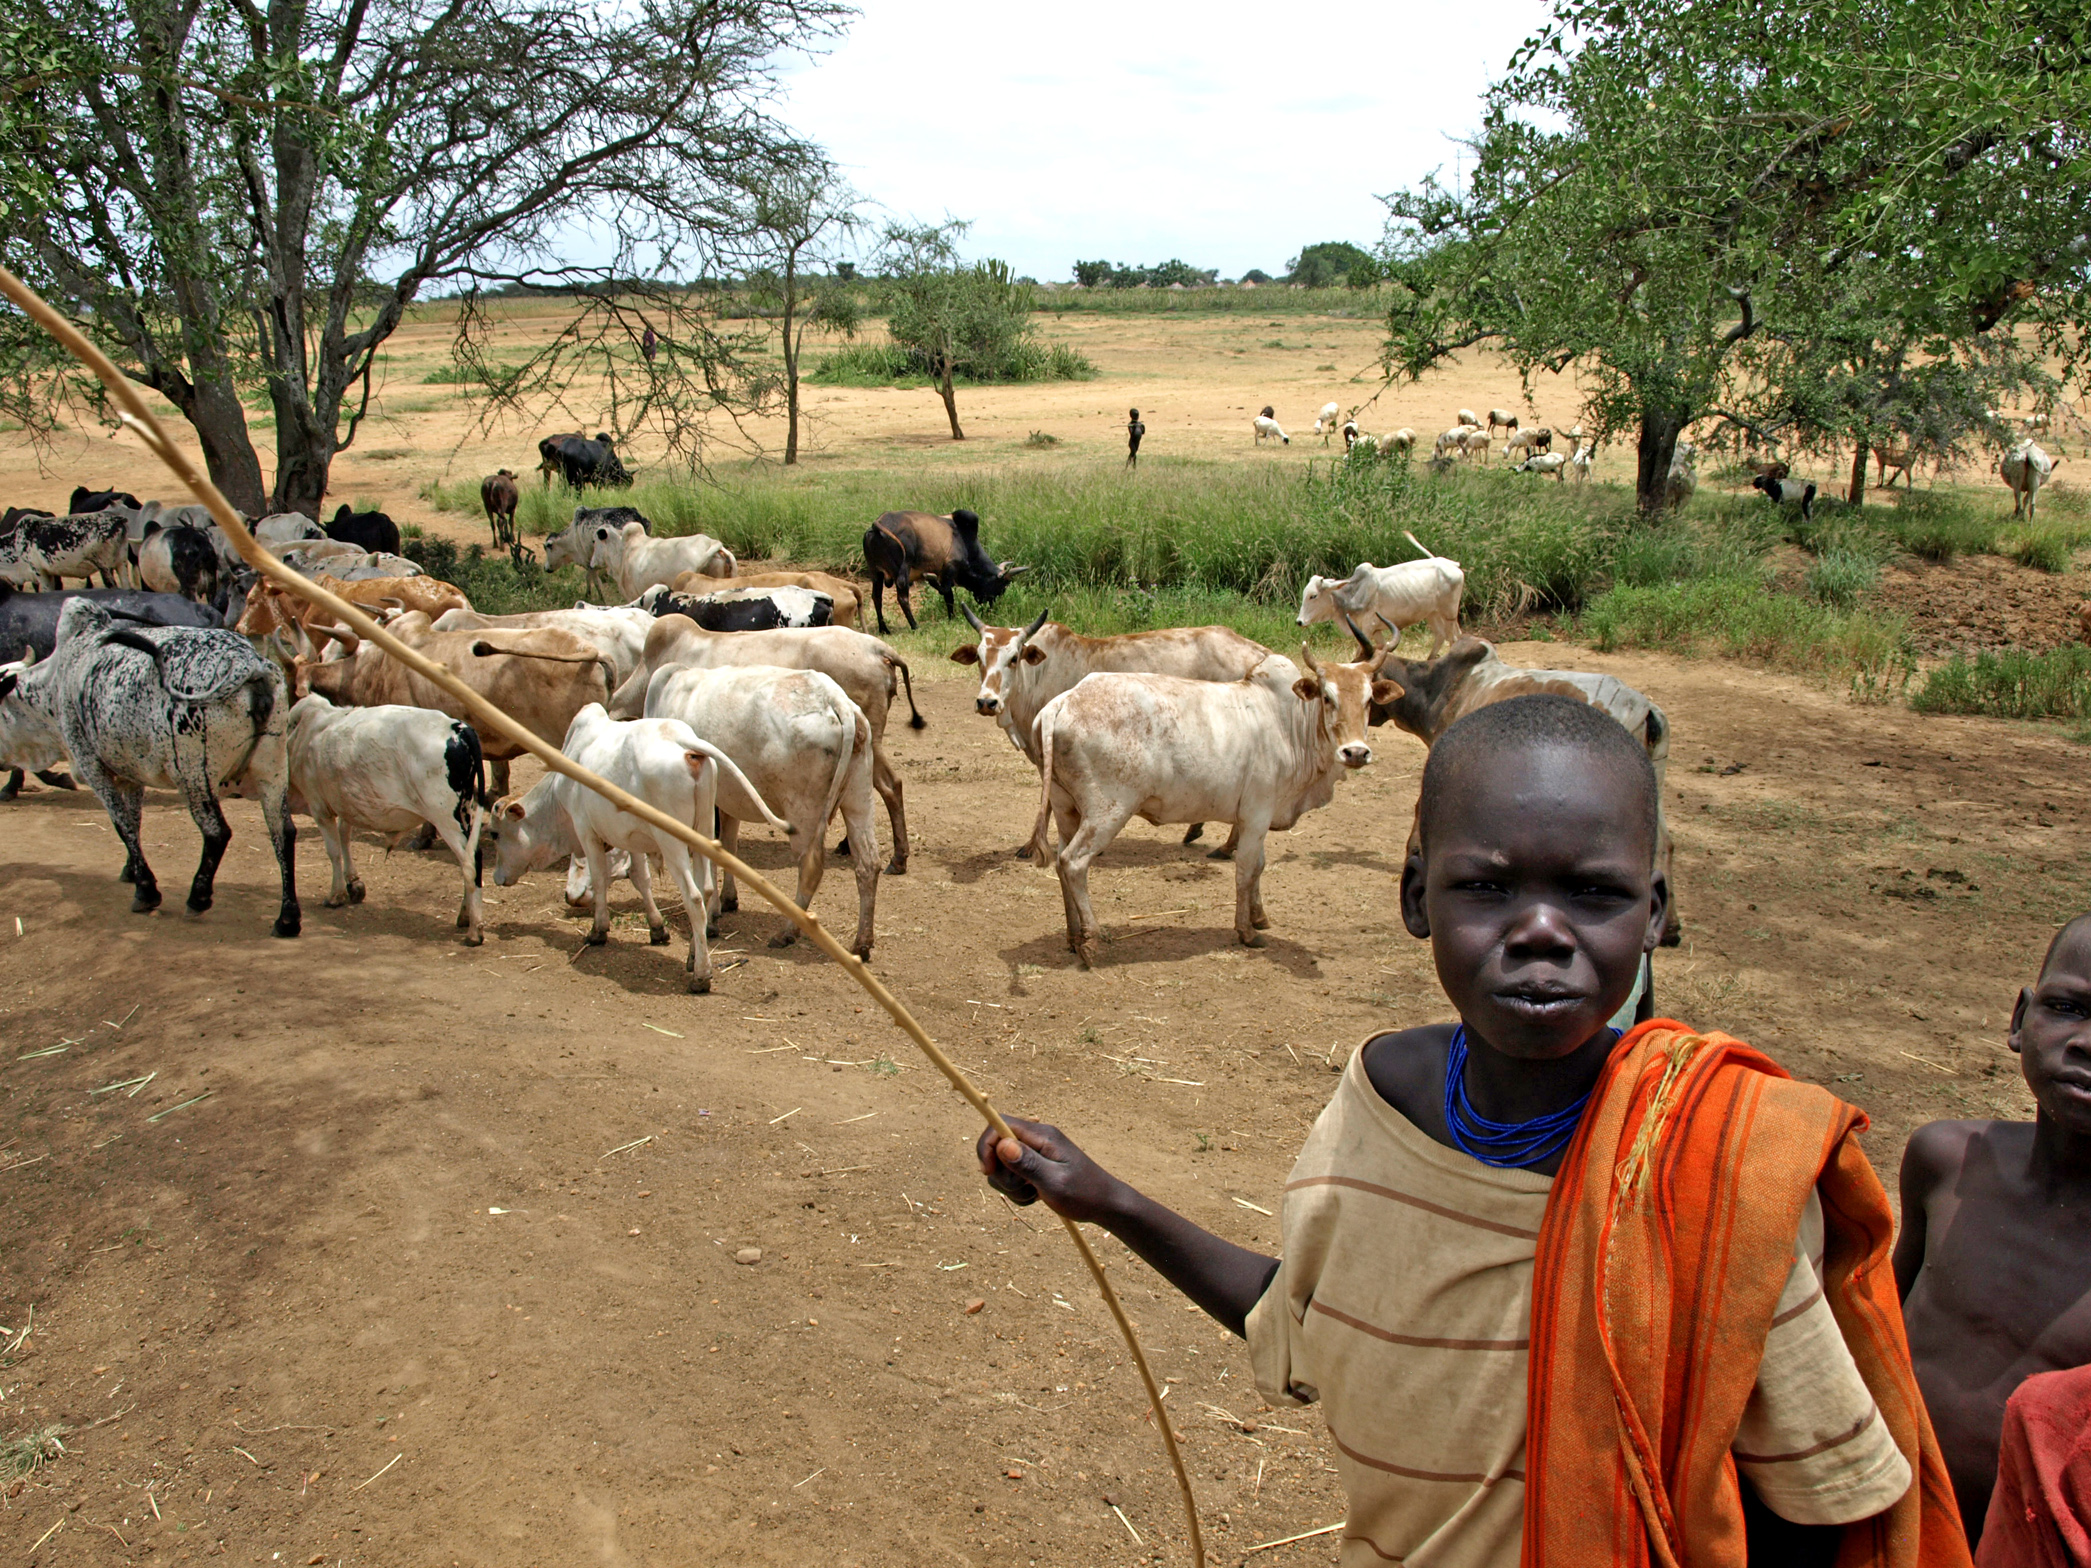 Domestic duties such as tending cattle keep many children in Uganda's Karamoha region out of school